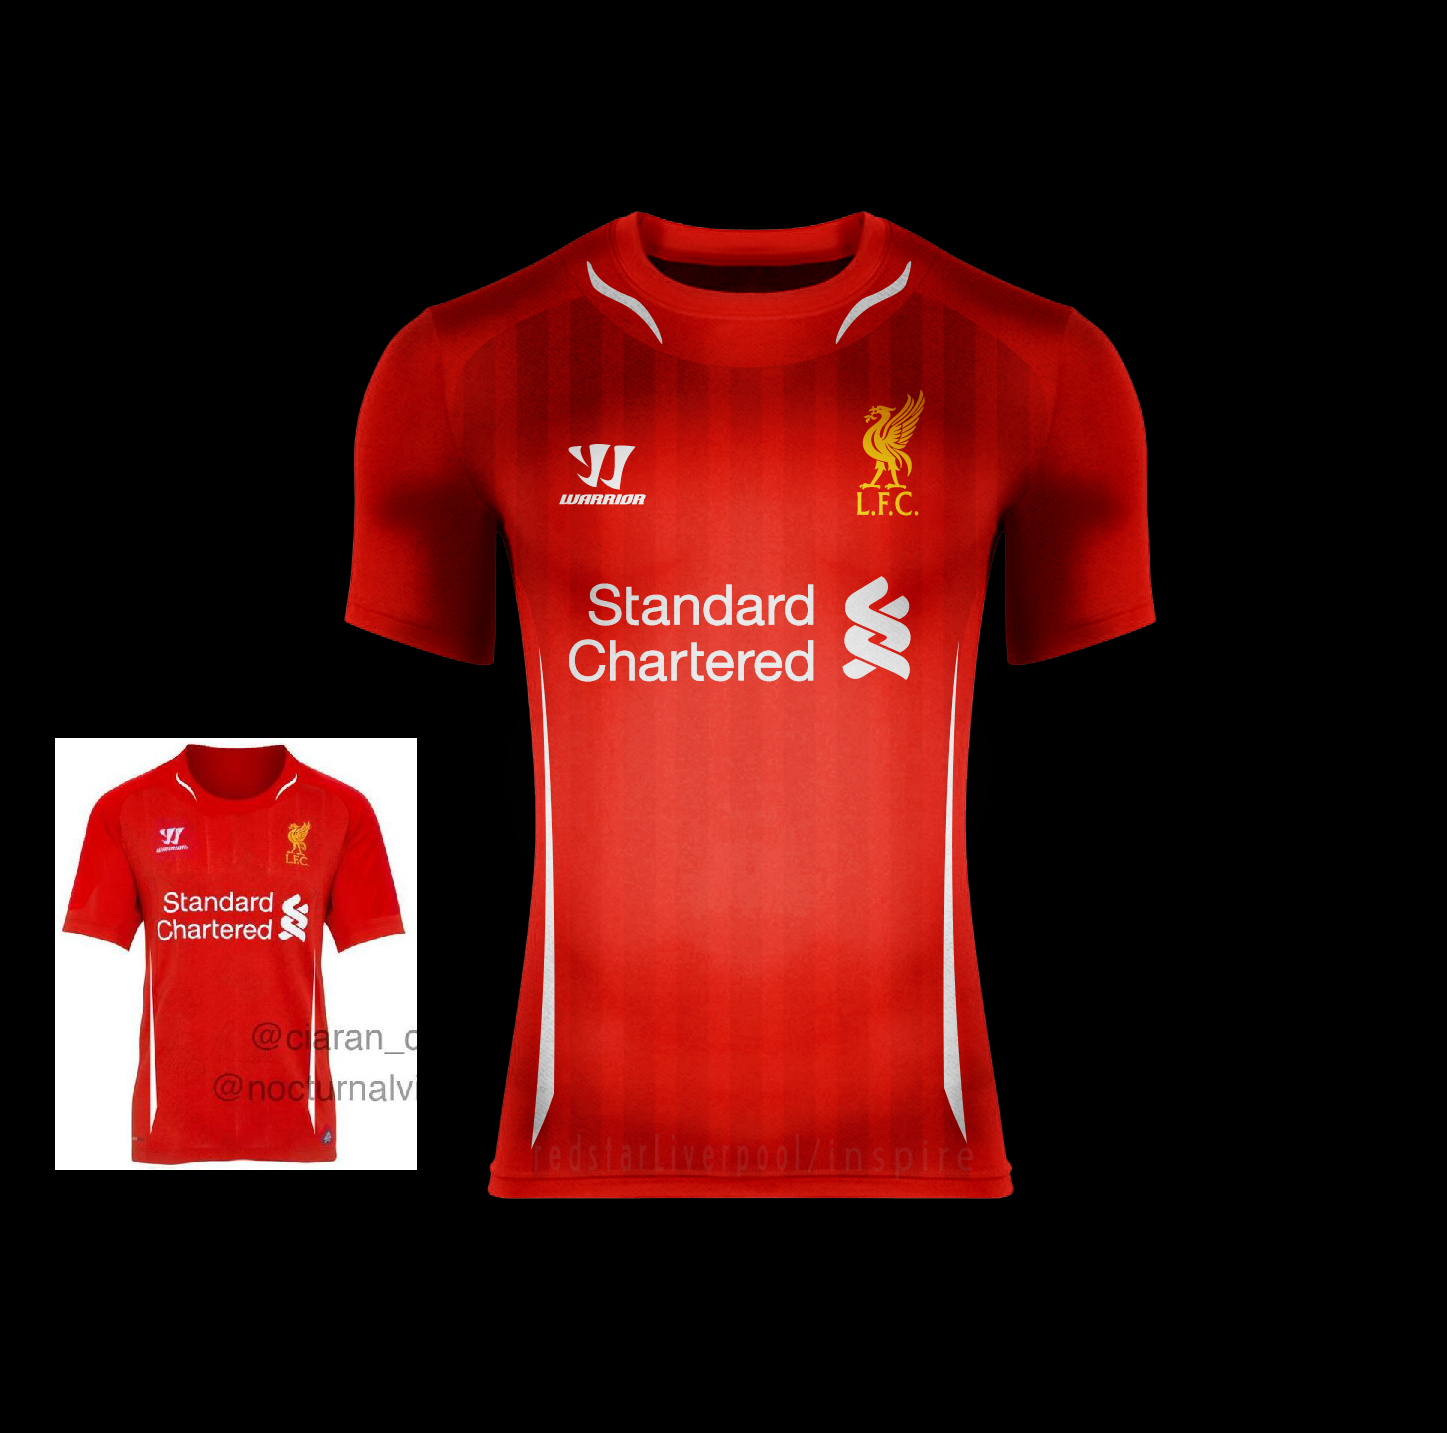 45a4da9d1 Liverpool F.C. Home 14 15 BASED ON LEAKED KIT